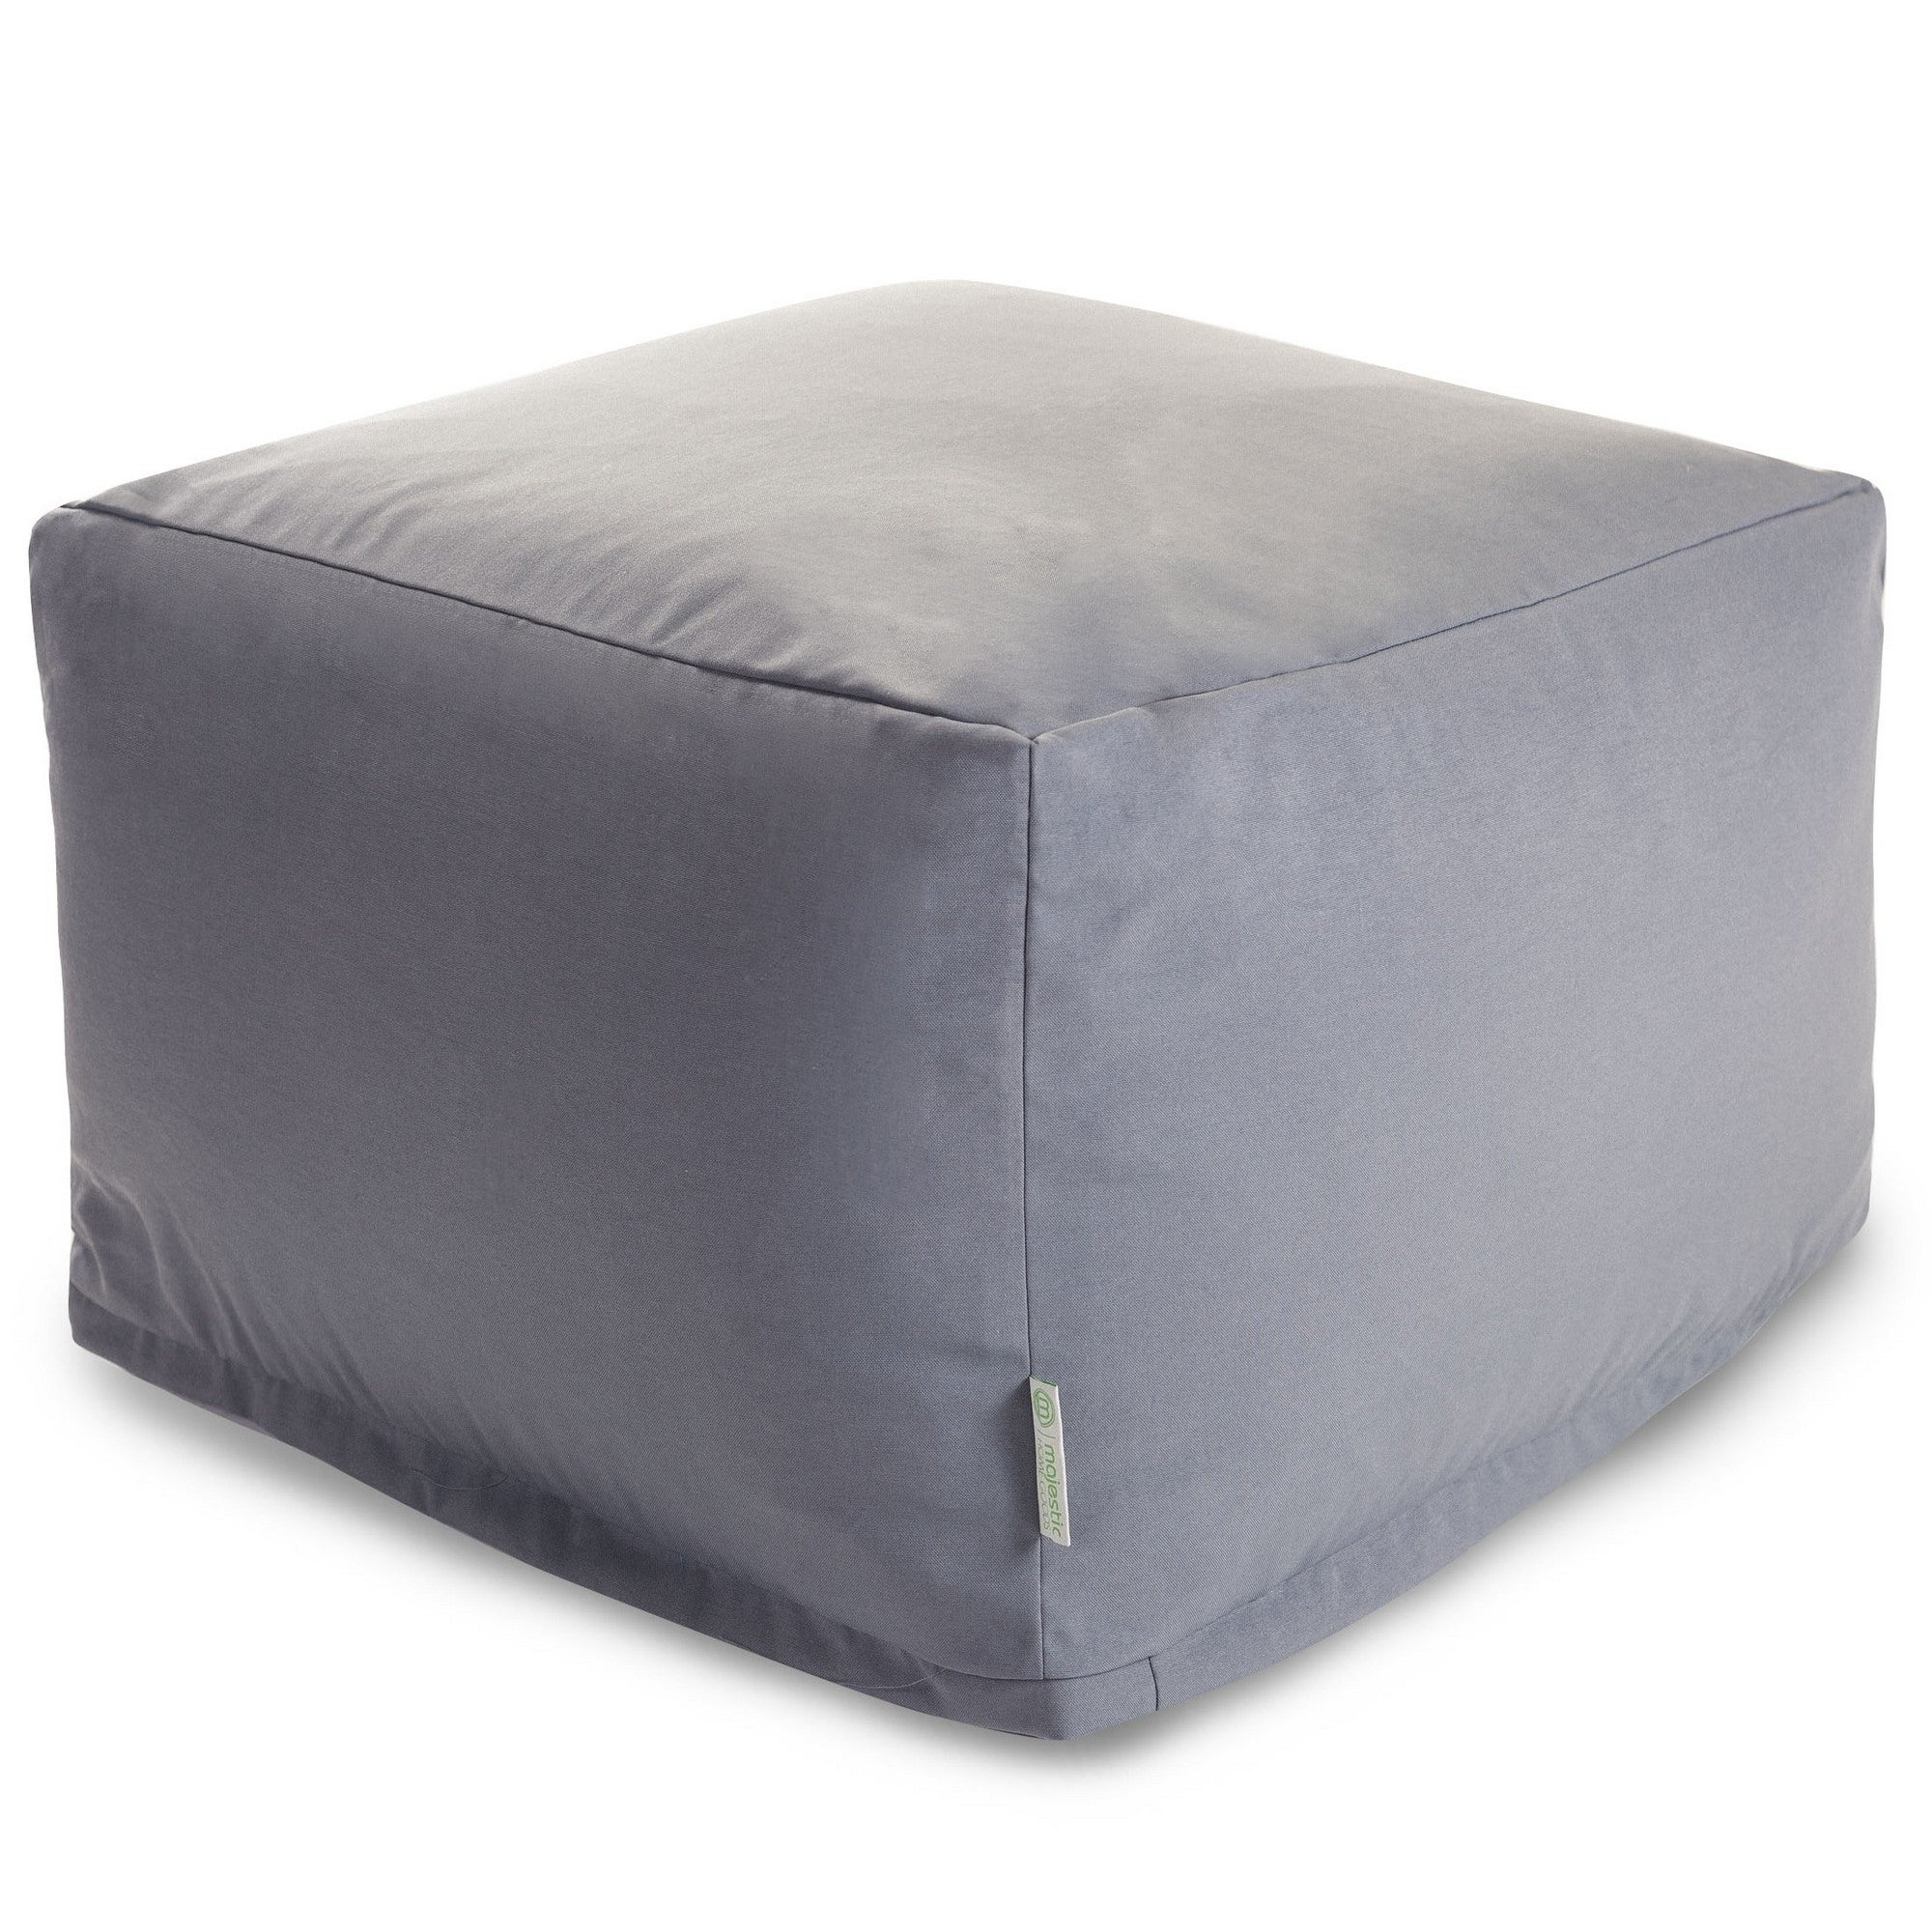 Majestic Home Gray Solid Ottoman Outdoor Indoor (Gray Sol...